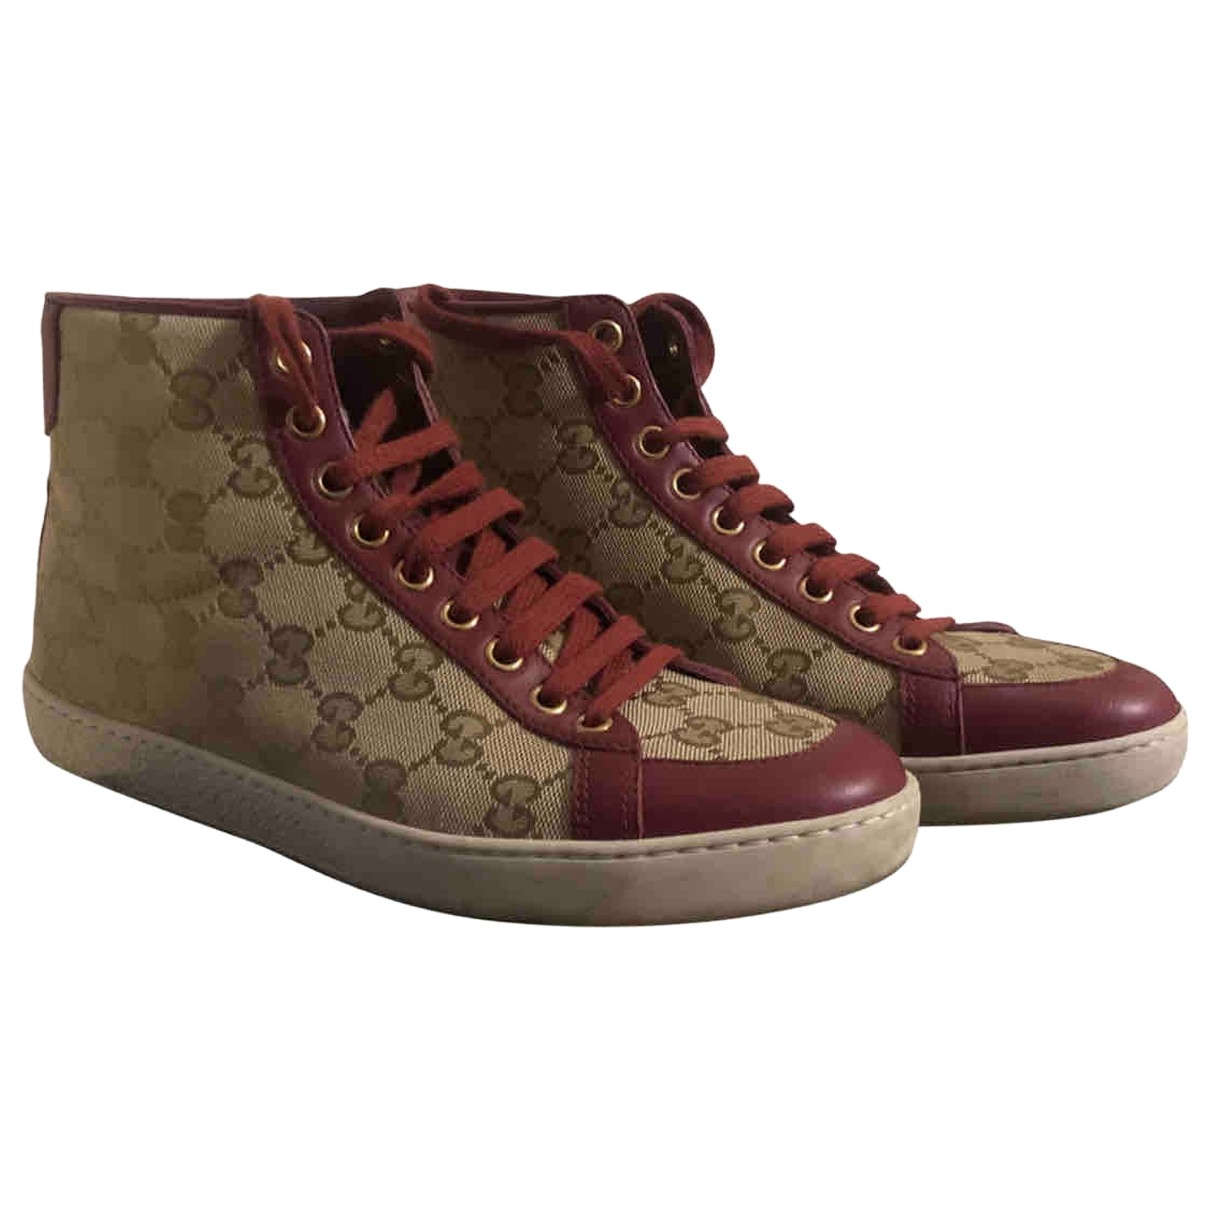 Gucci \N Burgundy Cloth Trainers for Women 37 EU